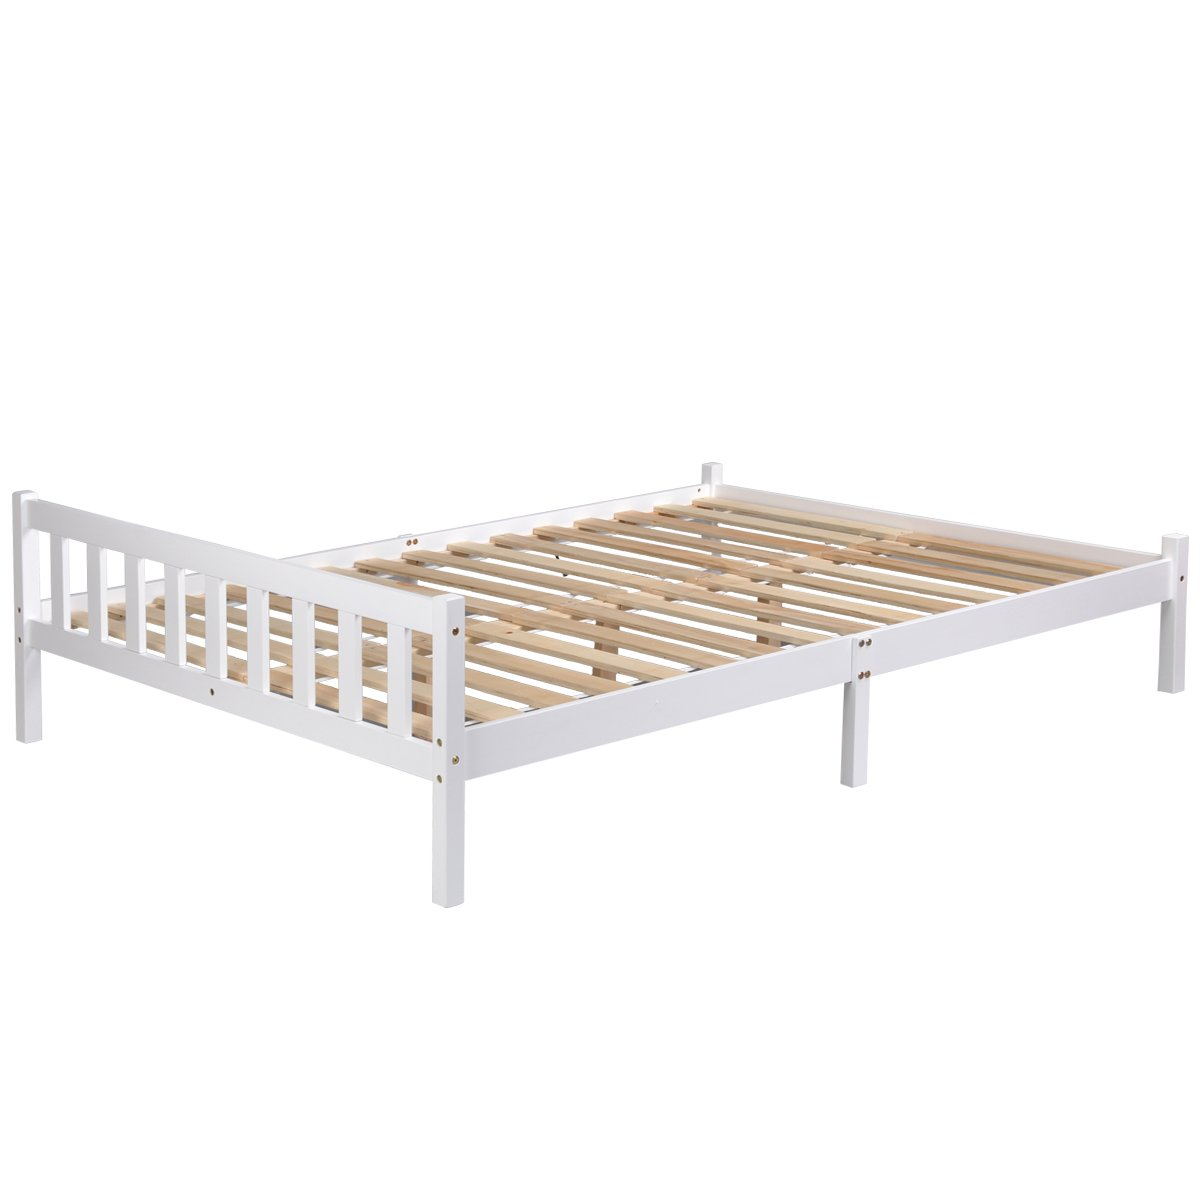 Innovareds natur robust massiv kiefernholz 4 ft6 queen bed side bed ...